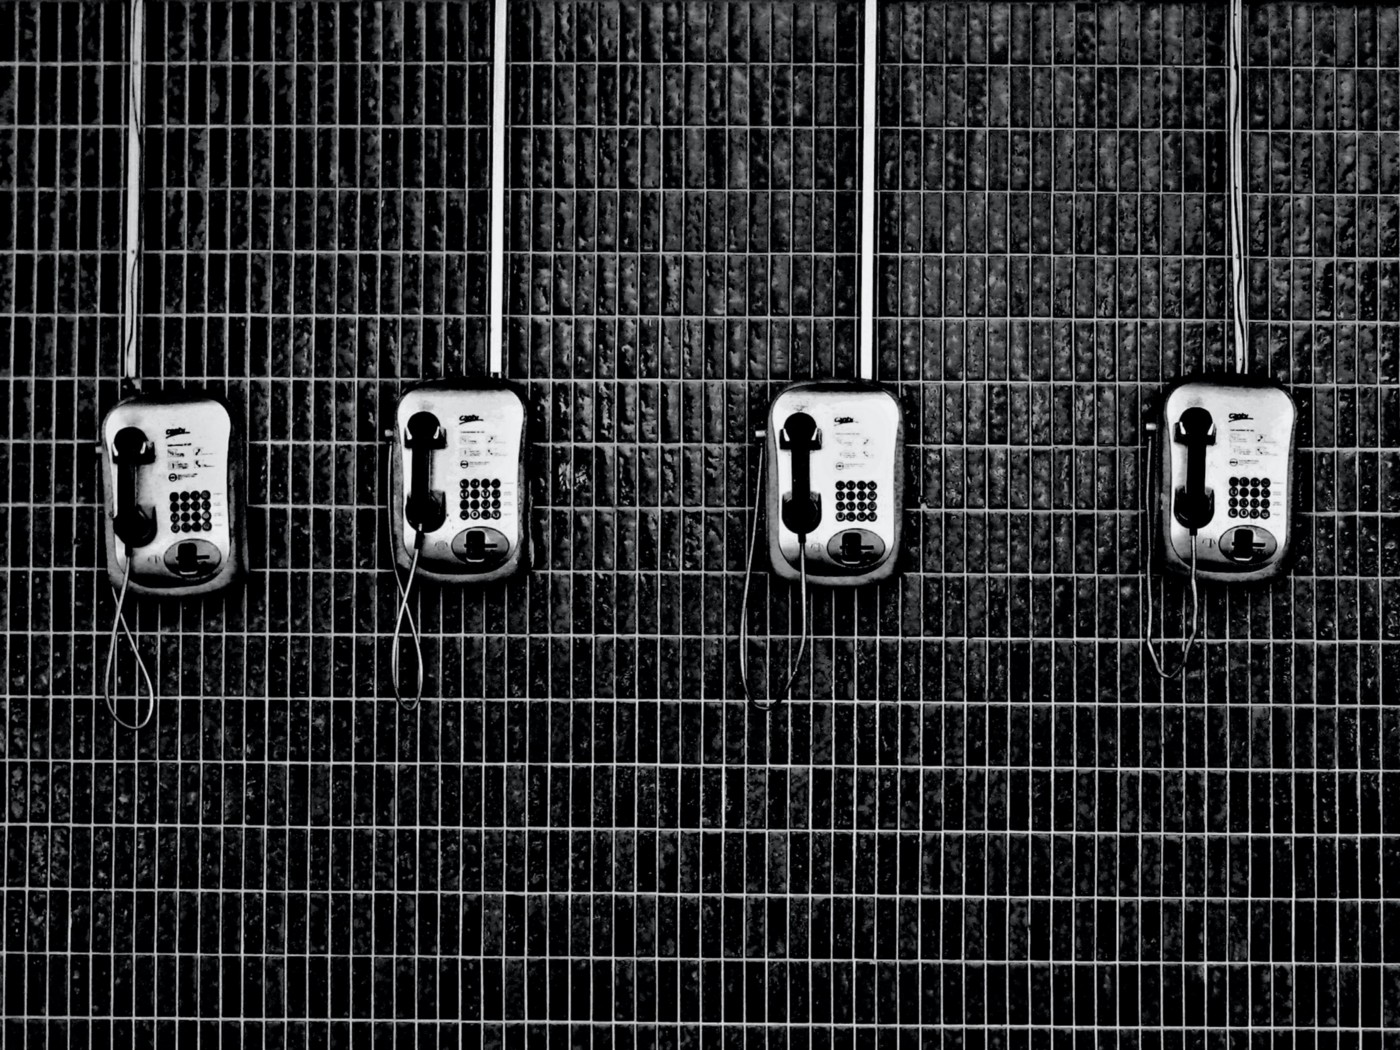 Four public telephones on a tiled subway wall.